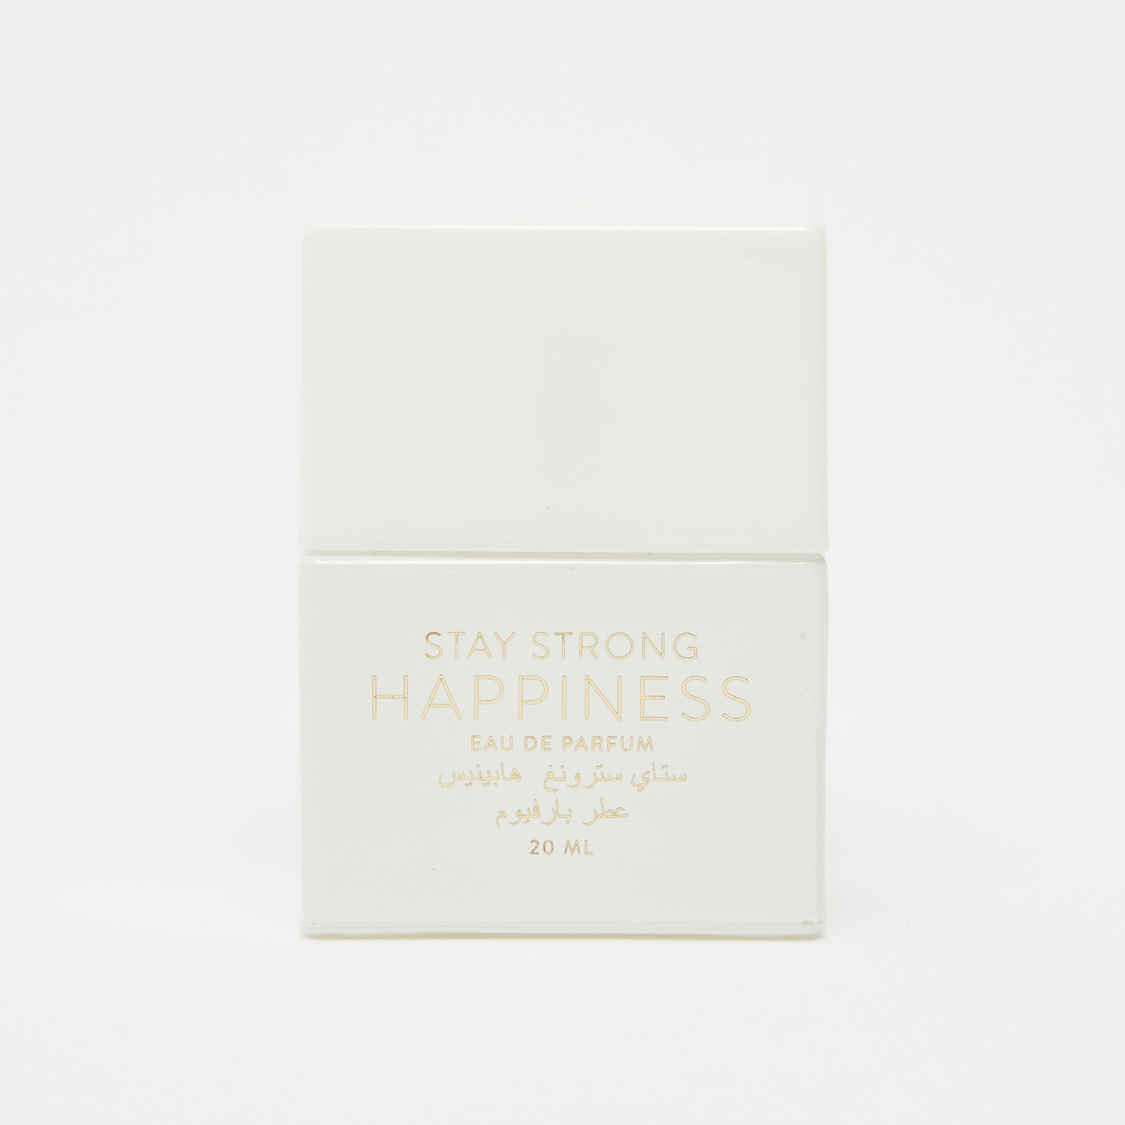 Stay Strong Happiness Eau De Parfum - 20 ml